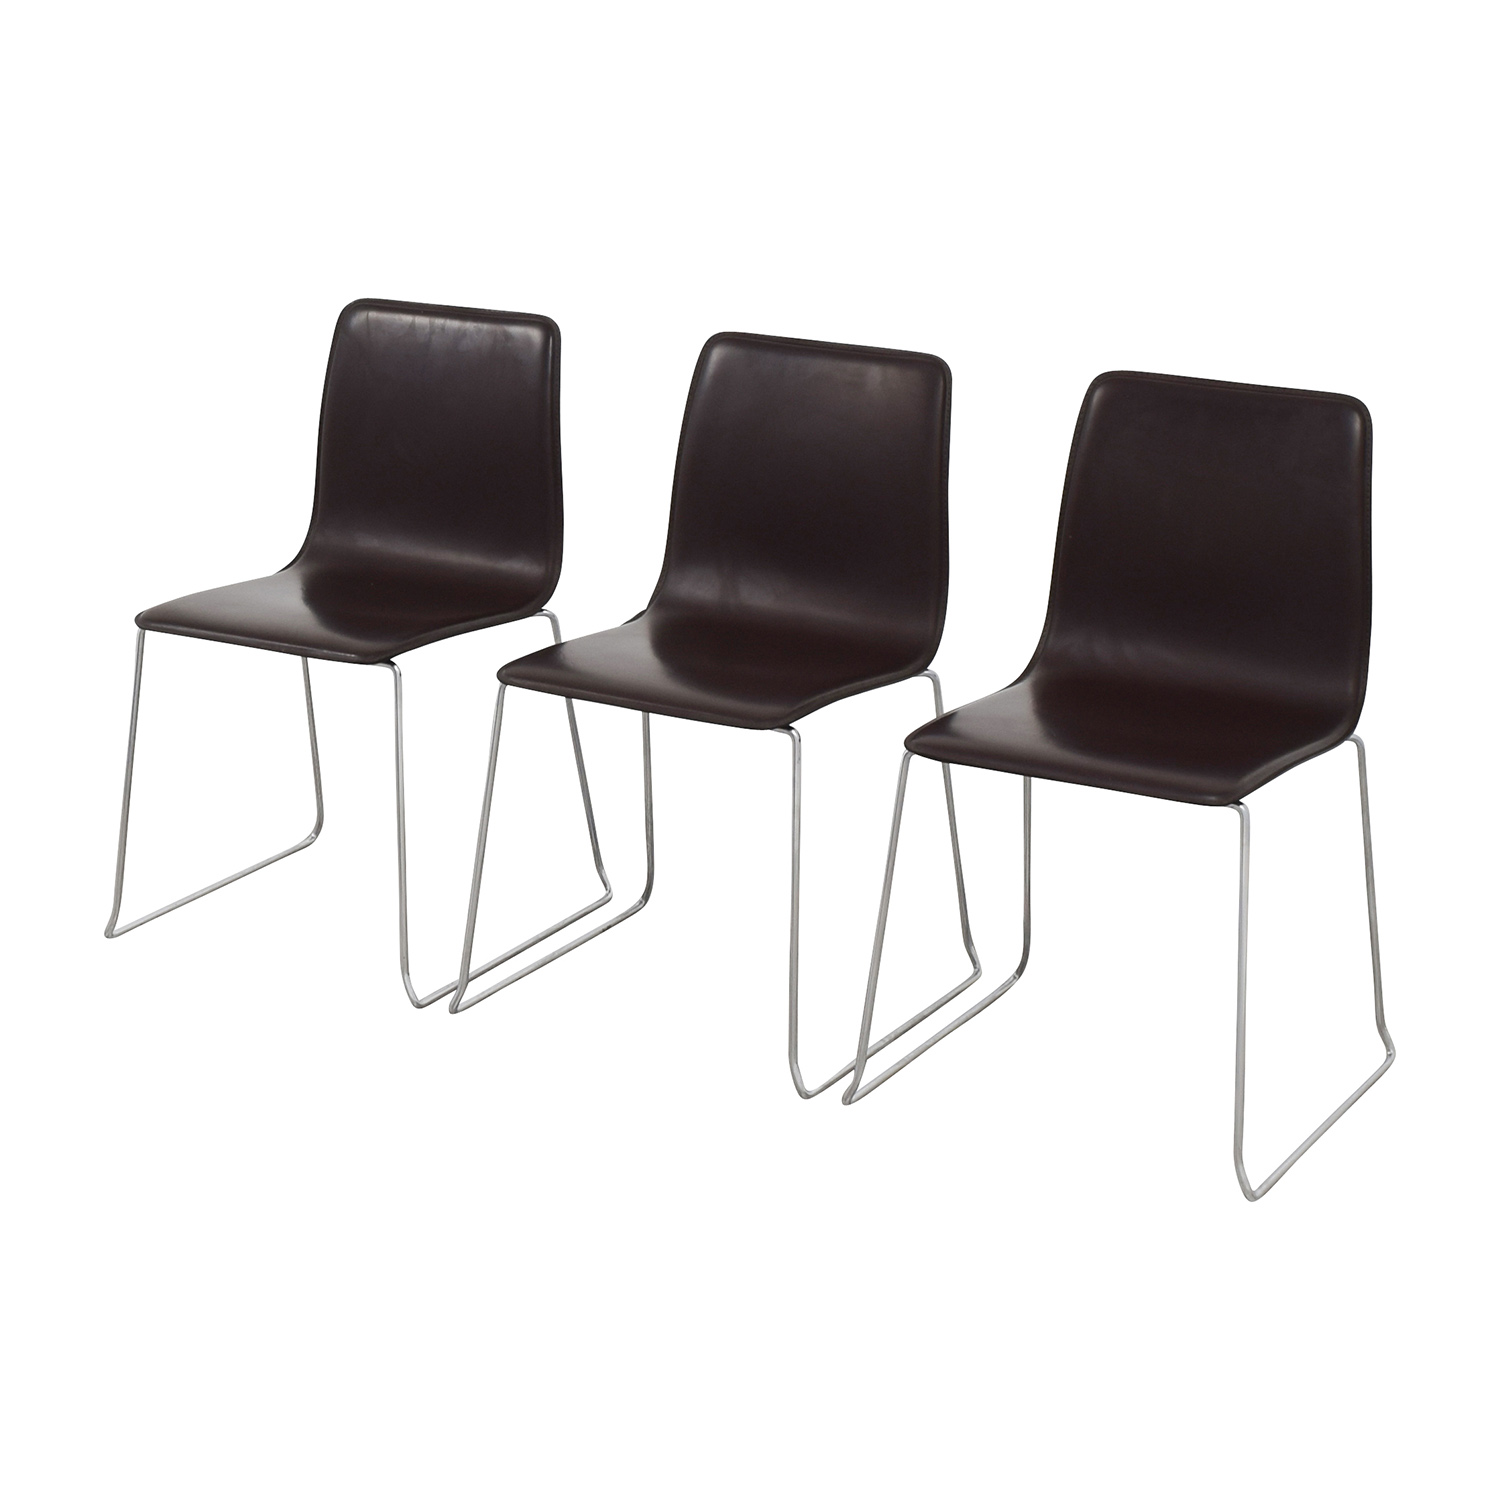 ABC Home & Carpet ABC Home & Carpet Leather and Chrome Chairs, Set of Three discount